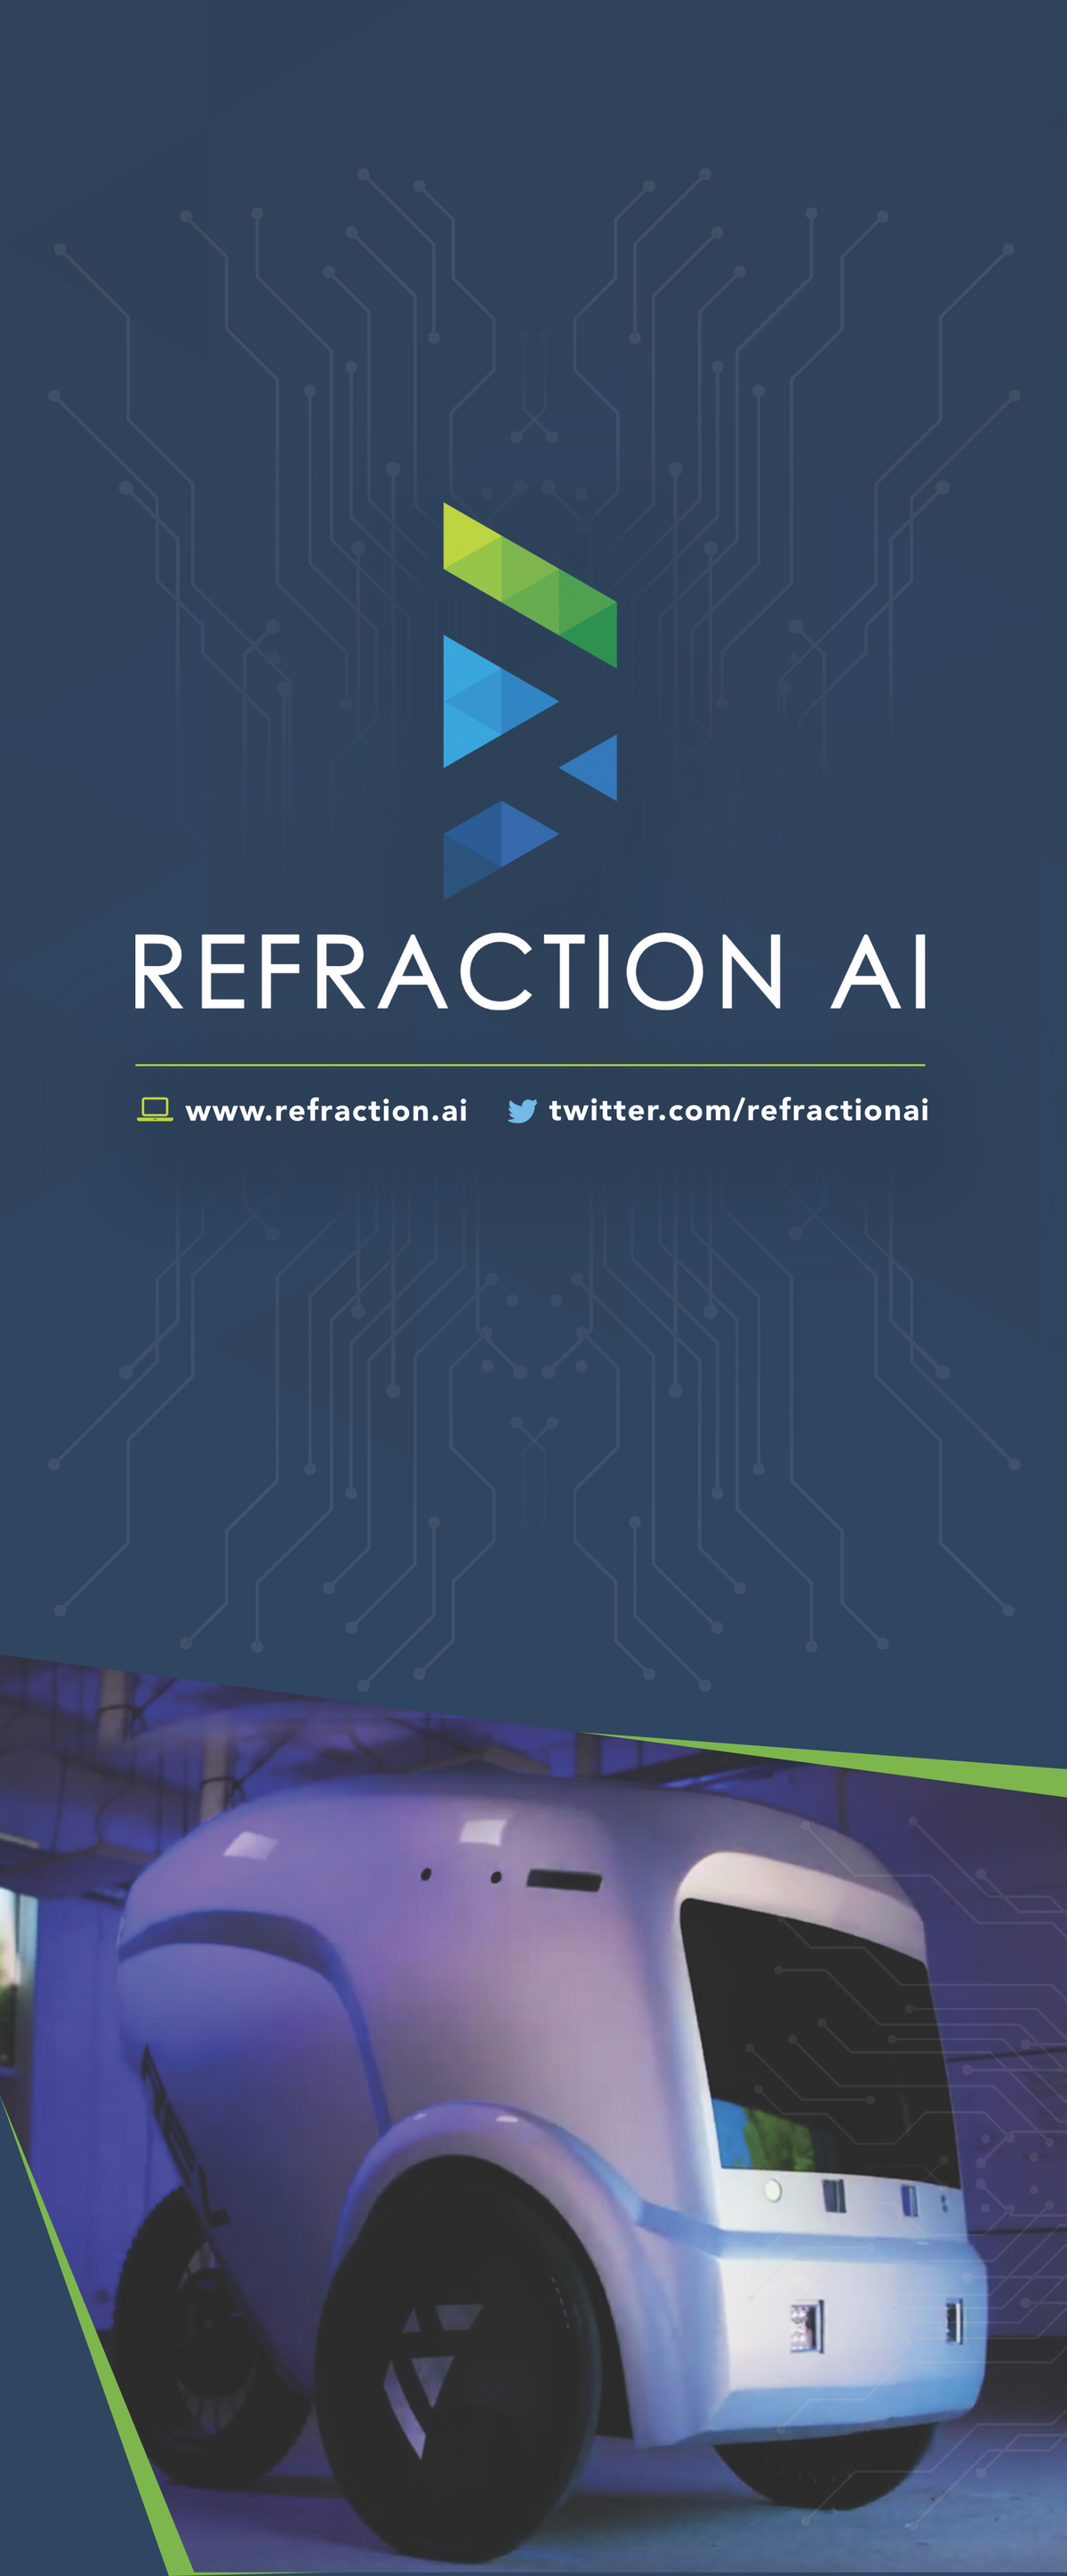 Retractable trade show banner for Refraction AI